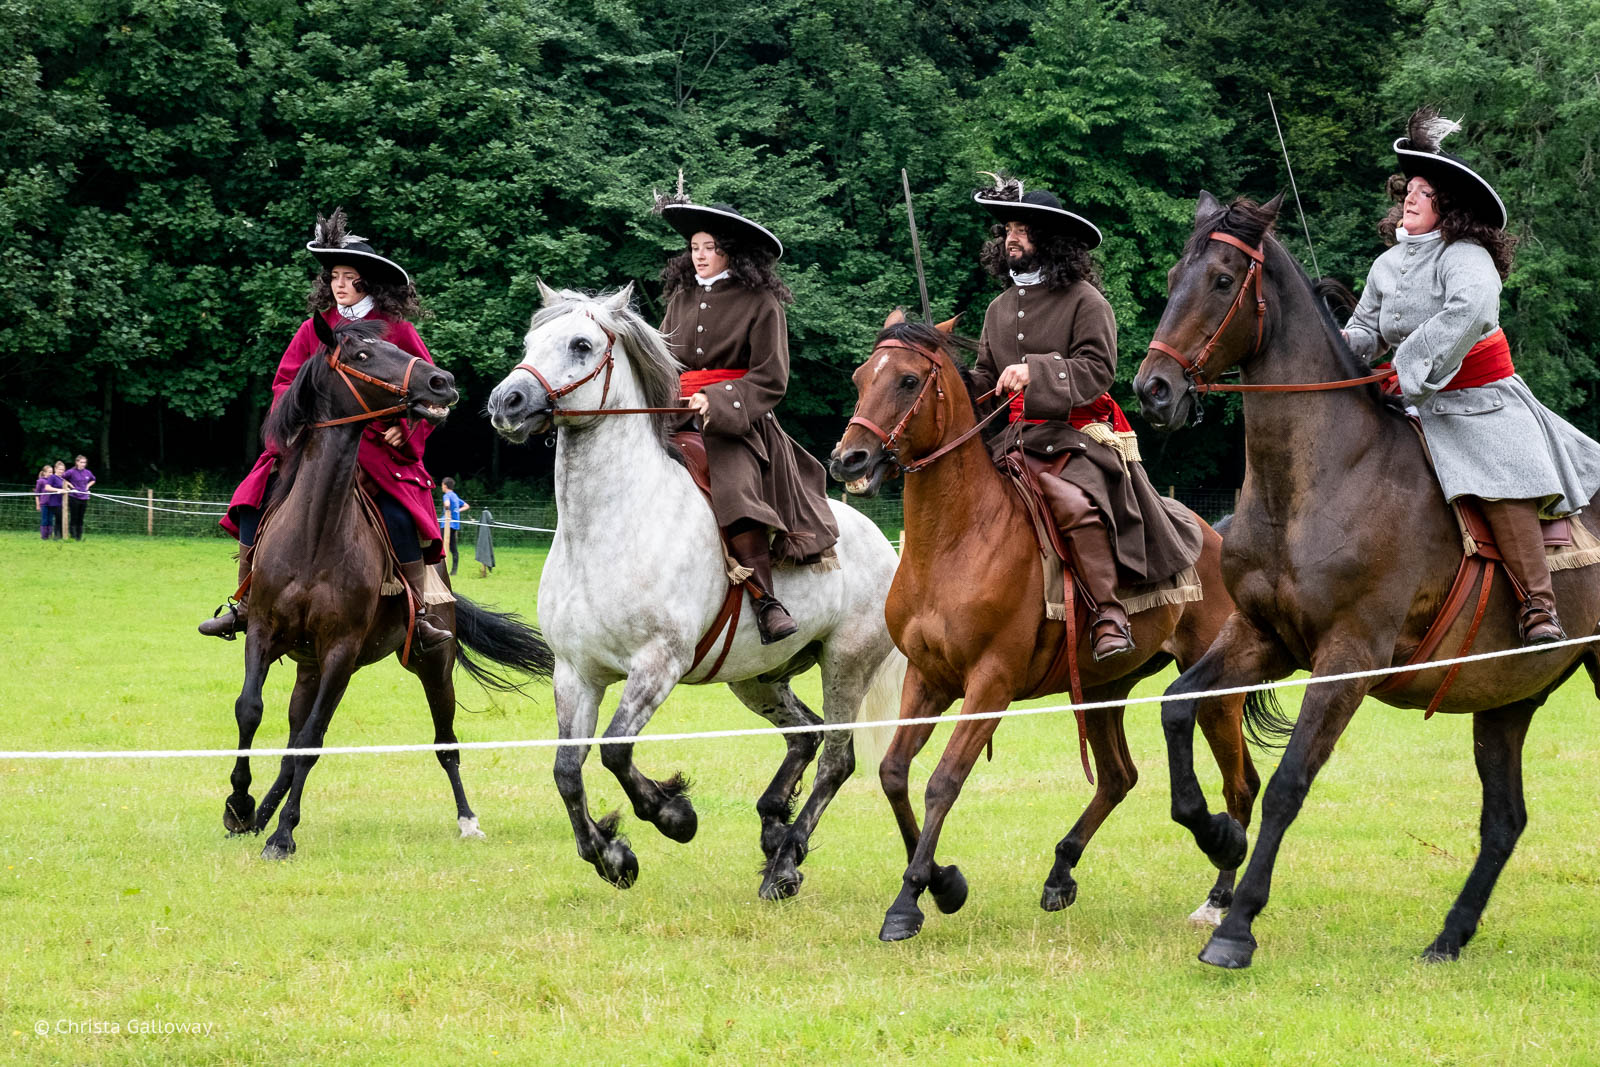 A calvary display at the Soldiers of Killiecrankie Battle Re-enactment.